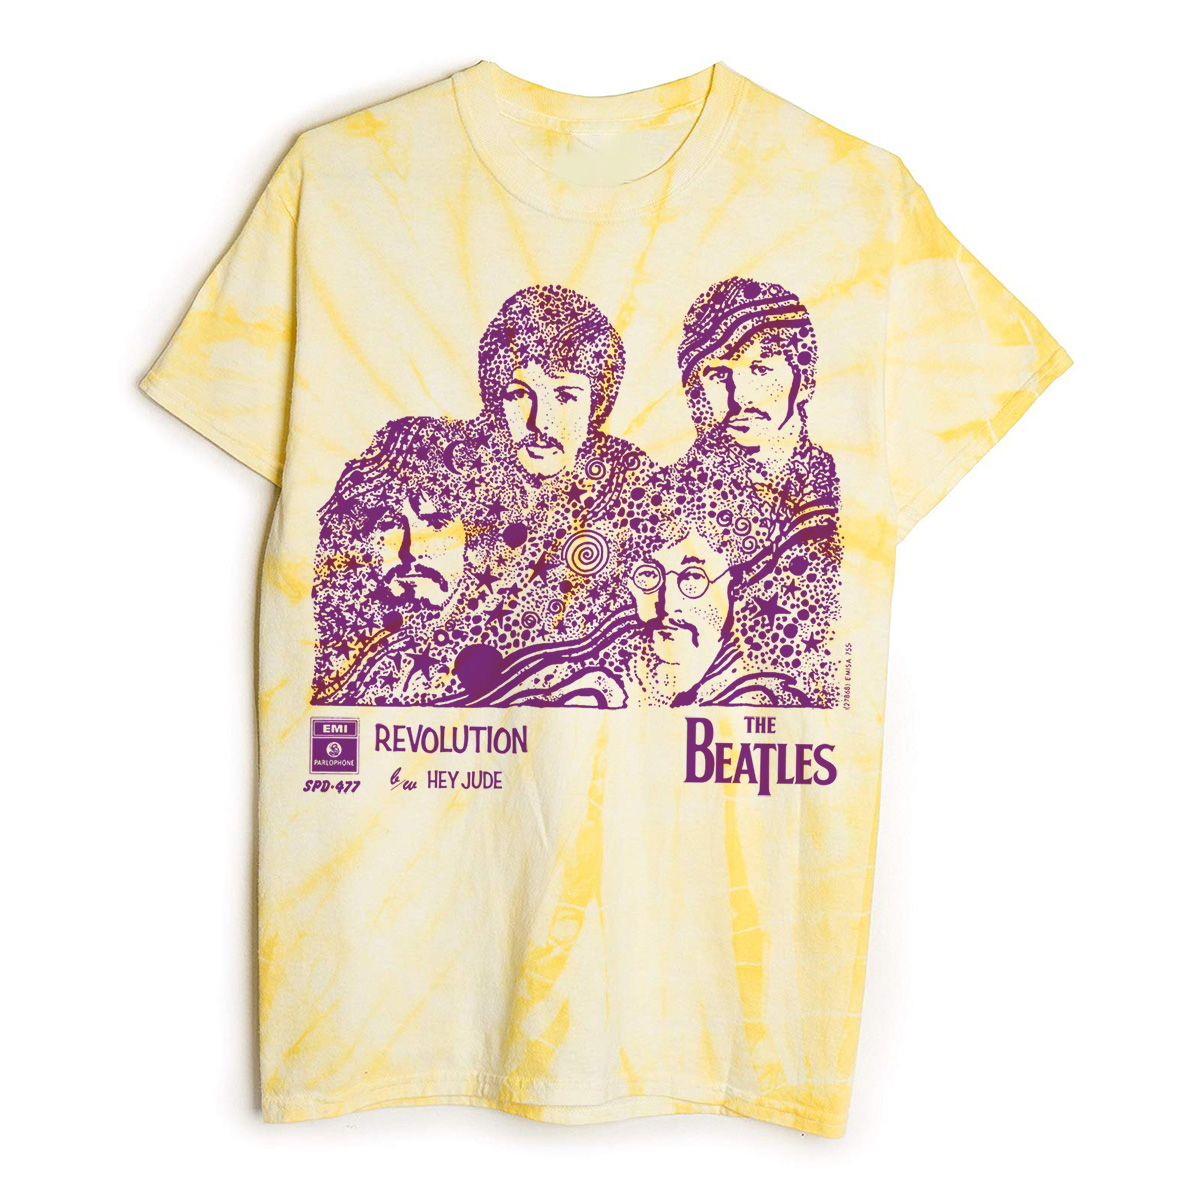 Revolution/Hey Jude Yellow Tie-Die T-Shirt